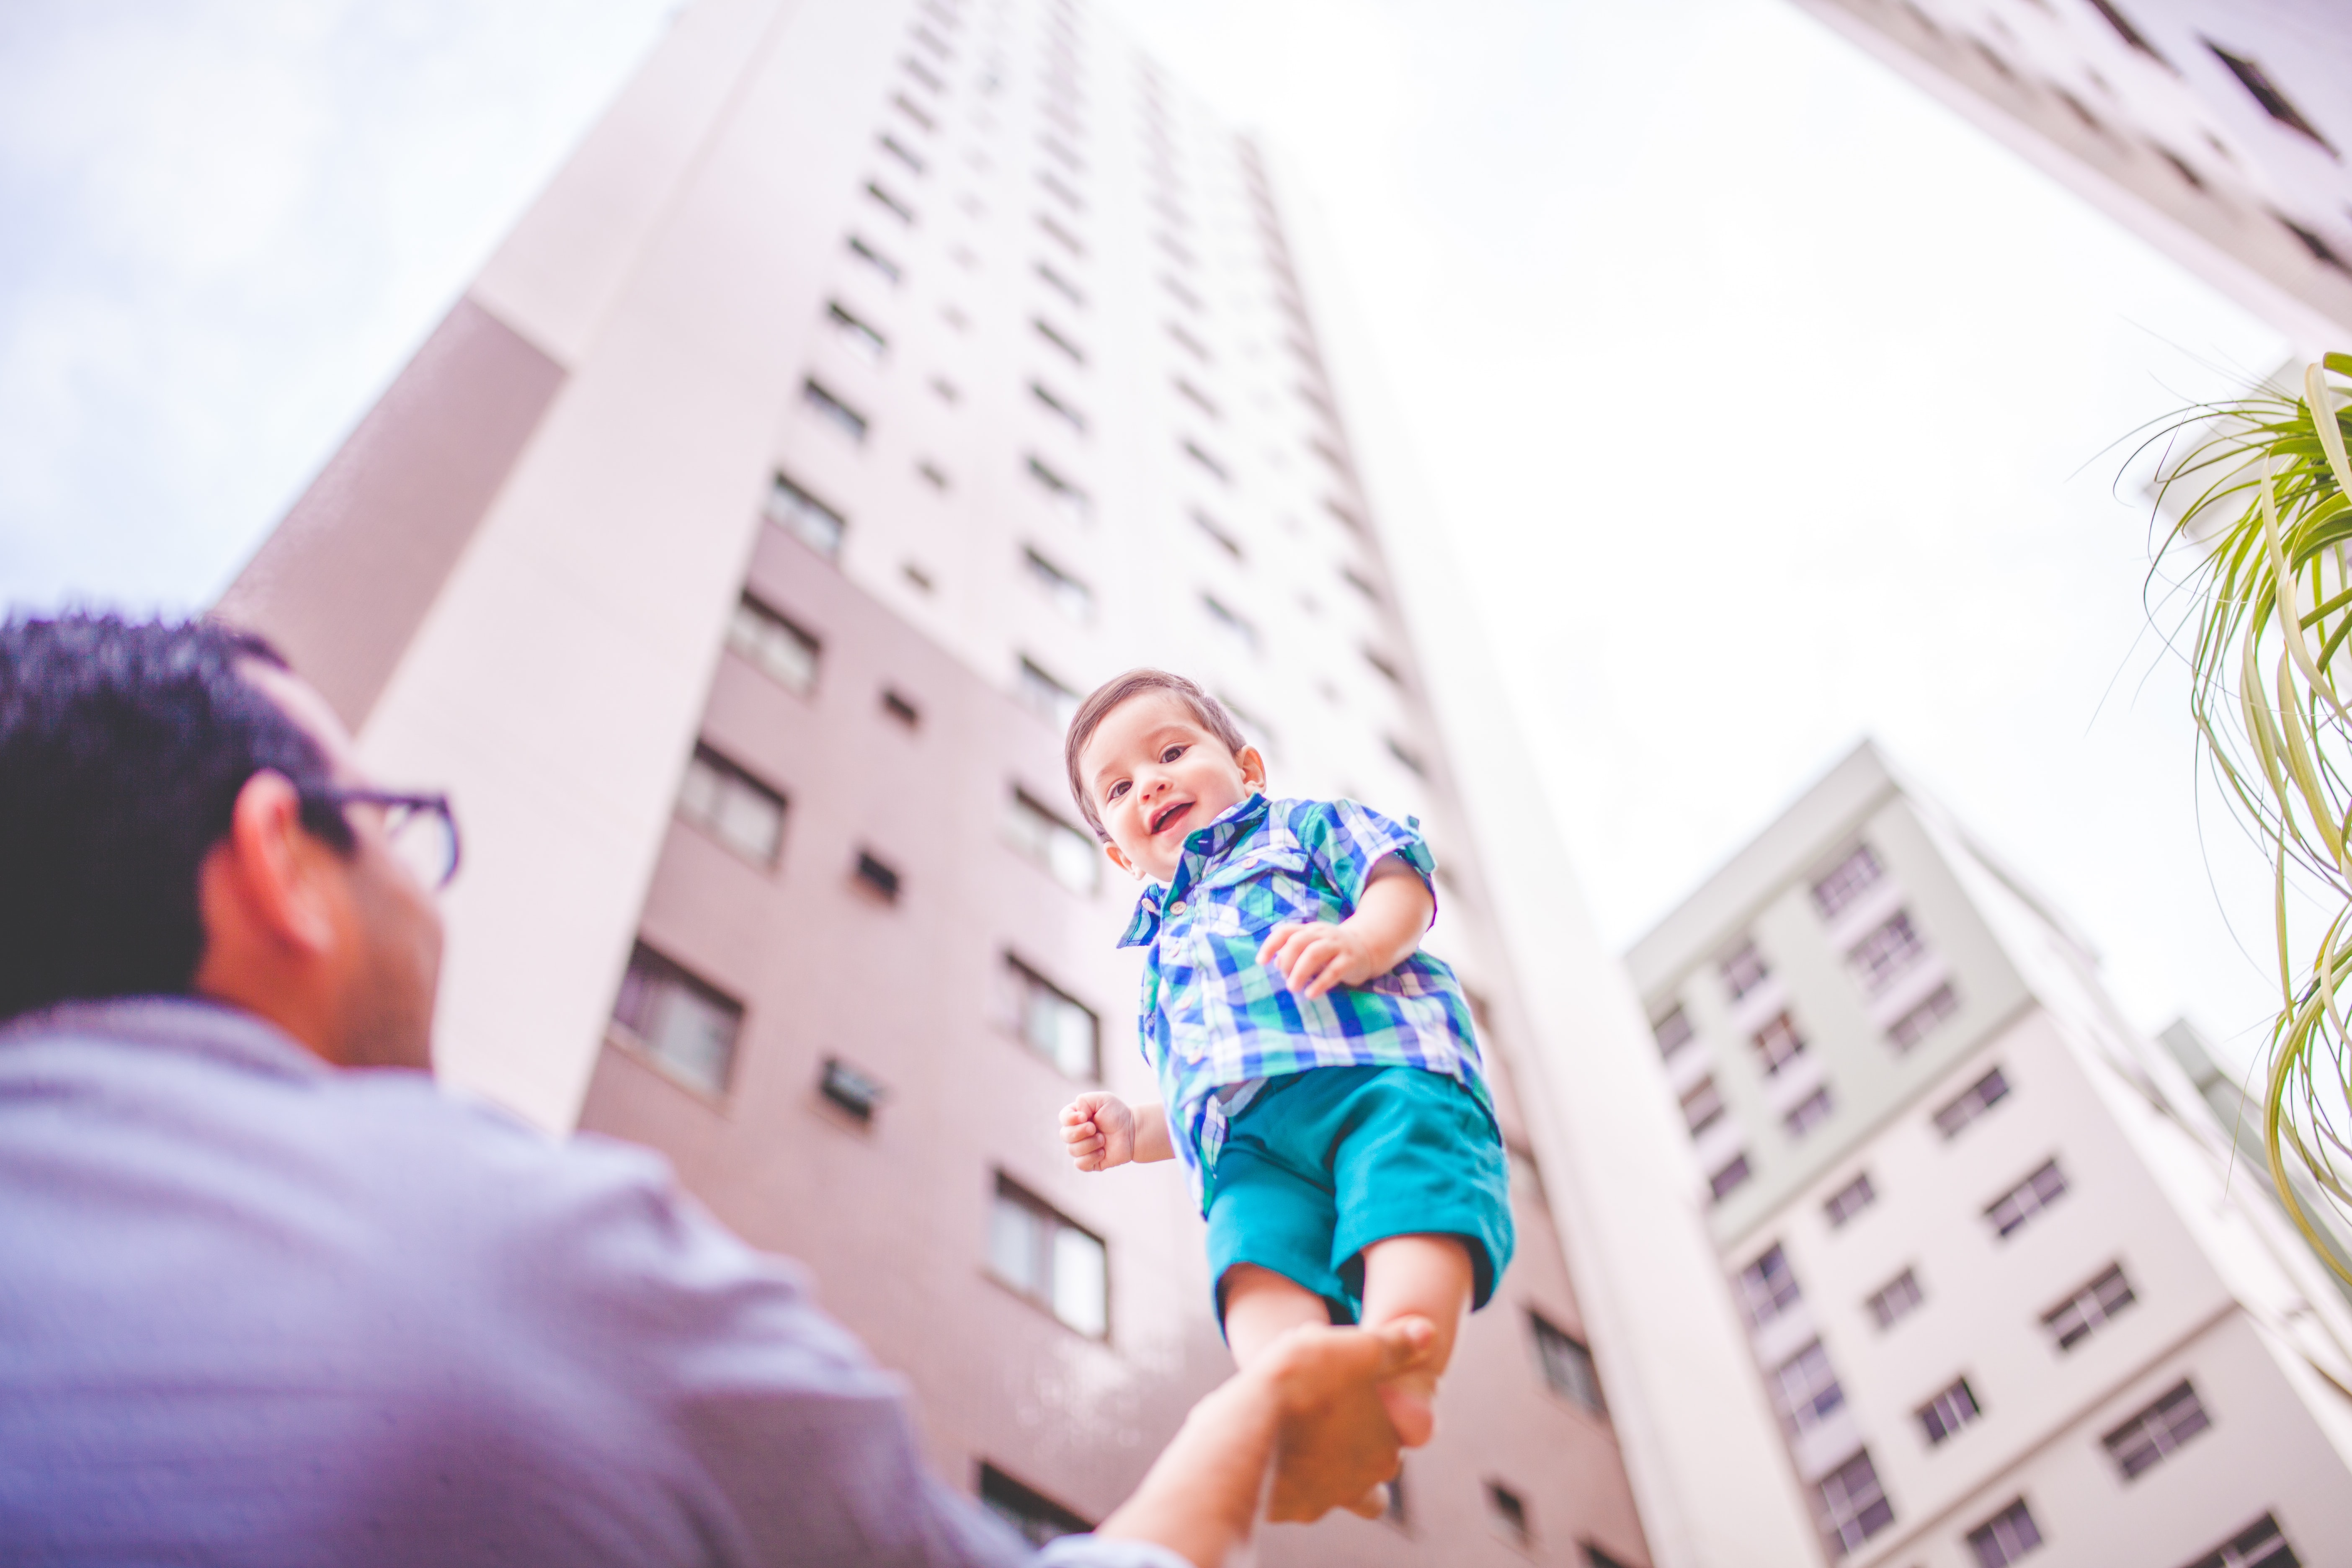 A man holds a child on the palm of his hand in front of a skyscraper